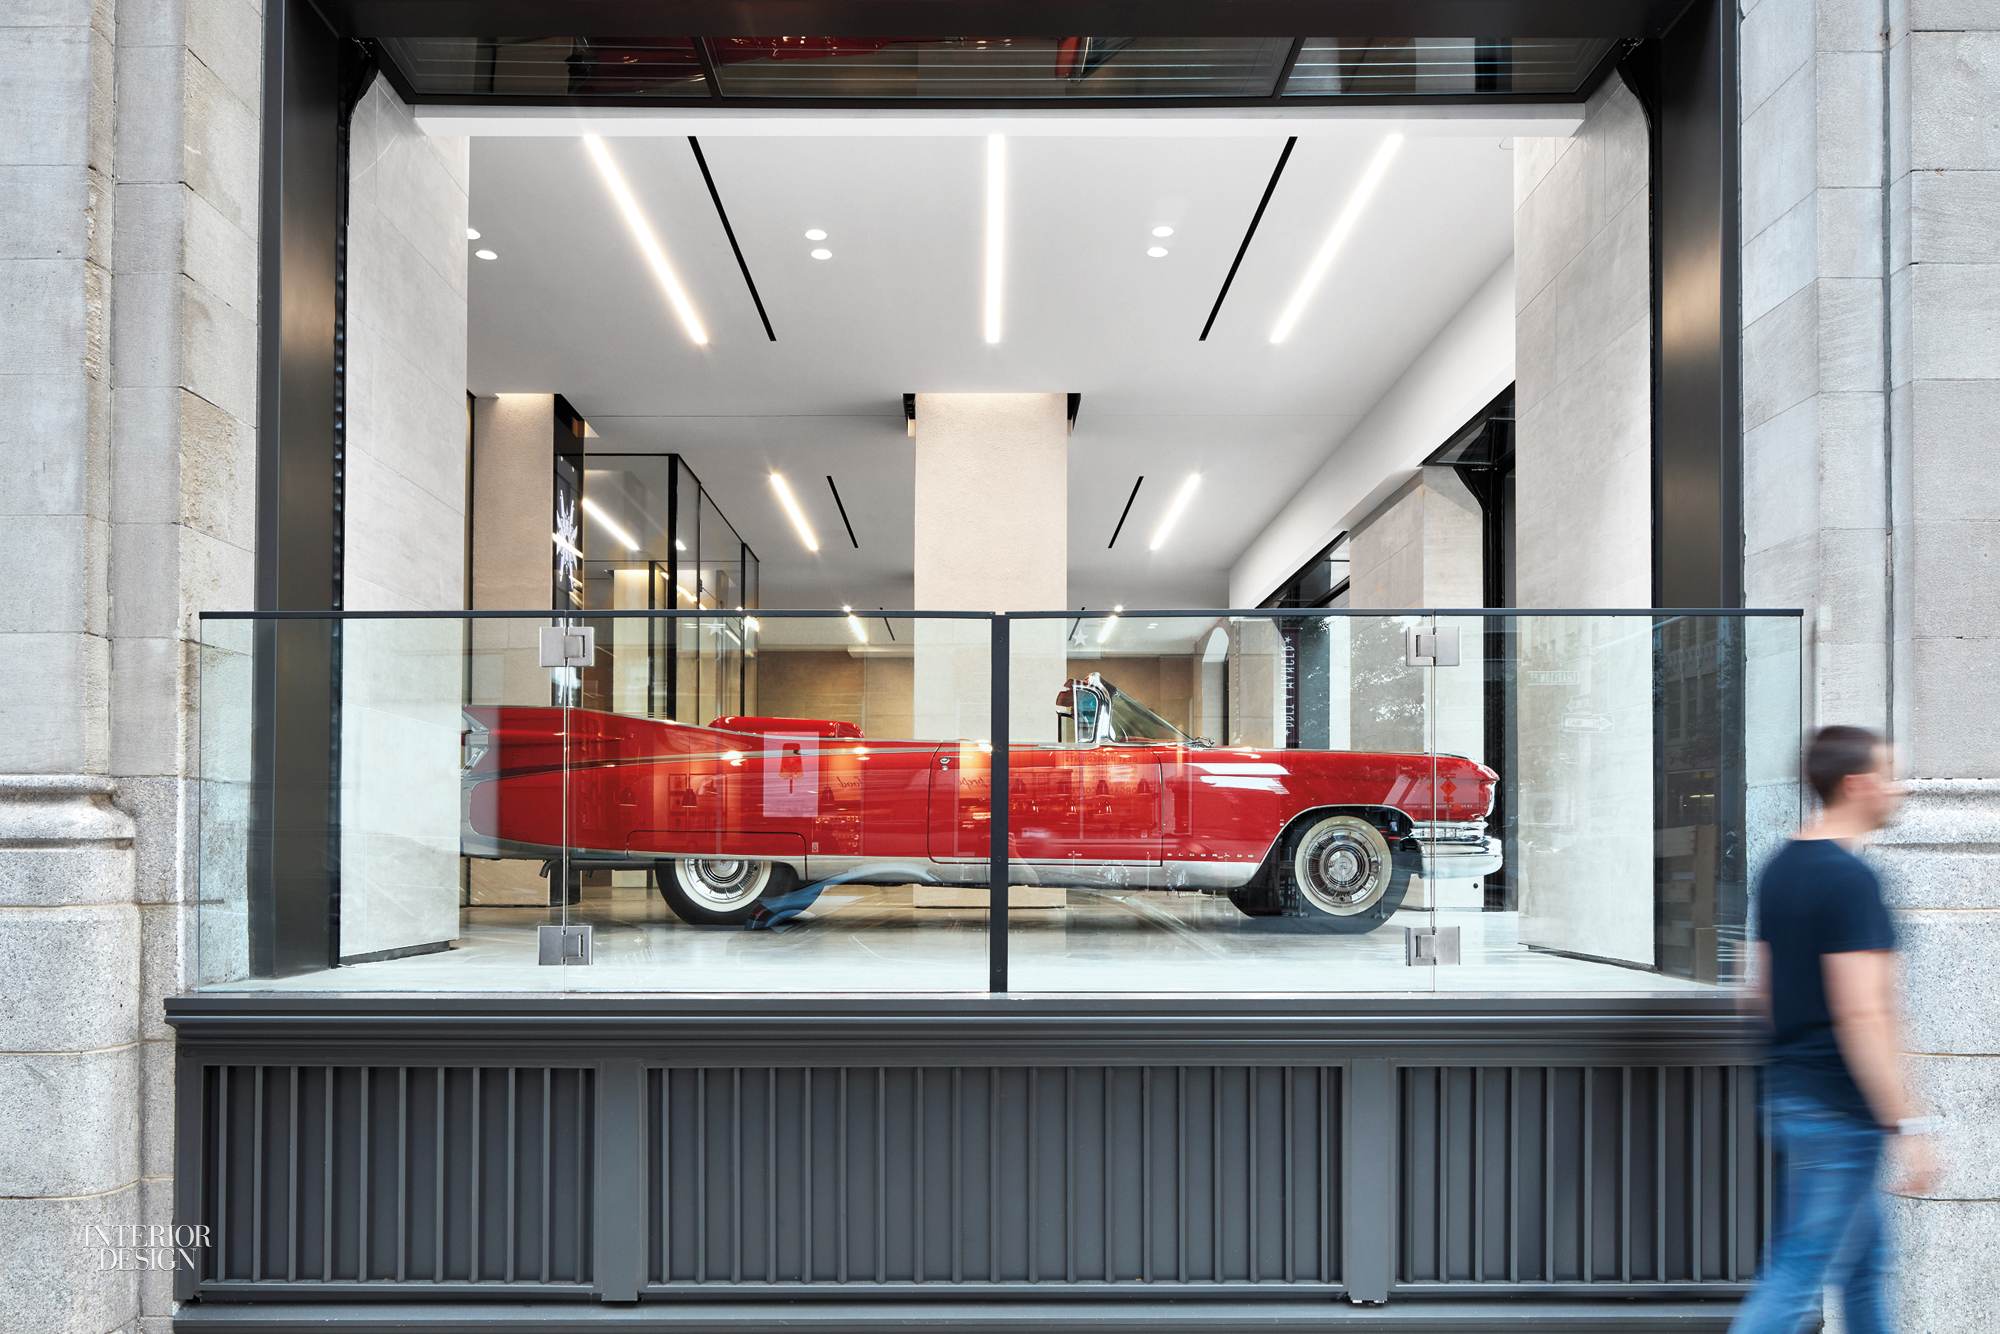 Cadillac house by gensler 2016 best of year winner for for Car showroom exterior design